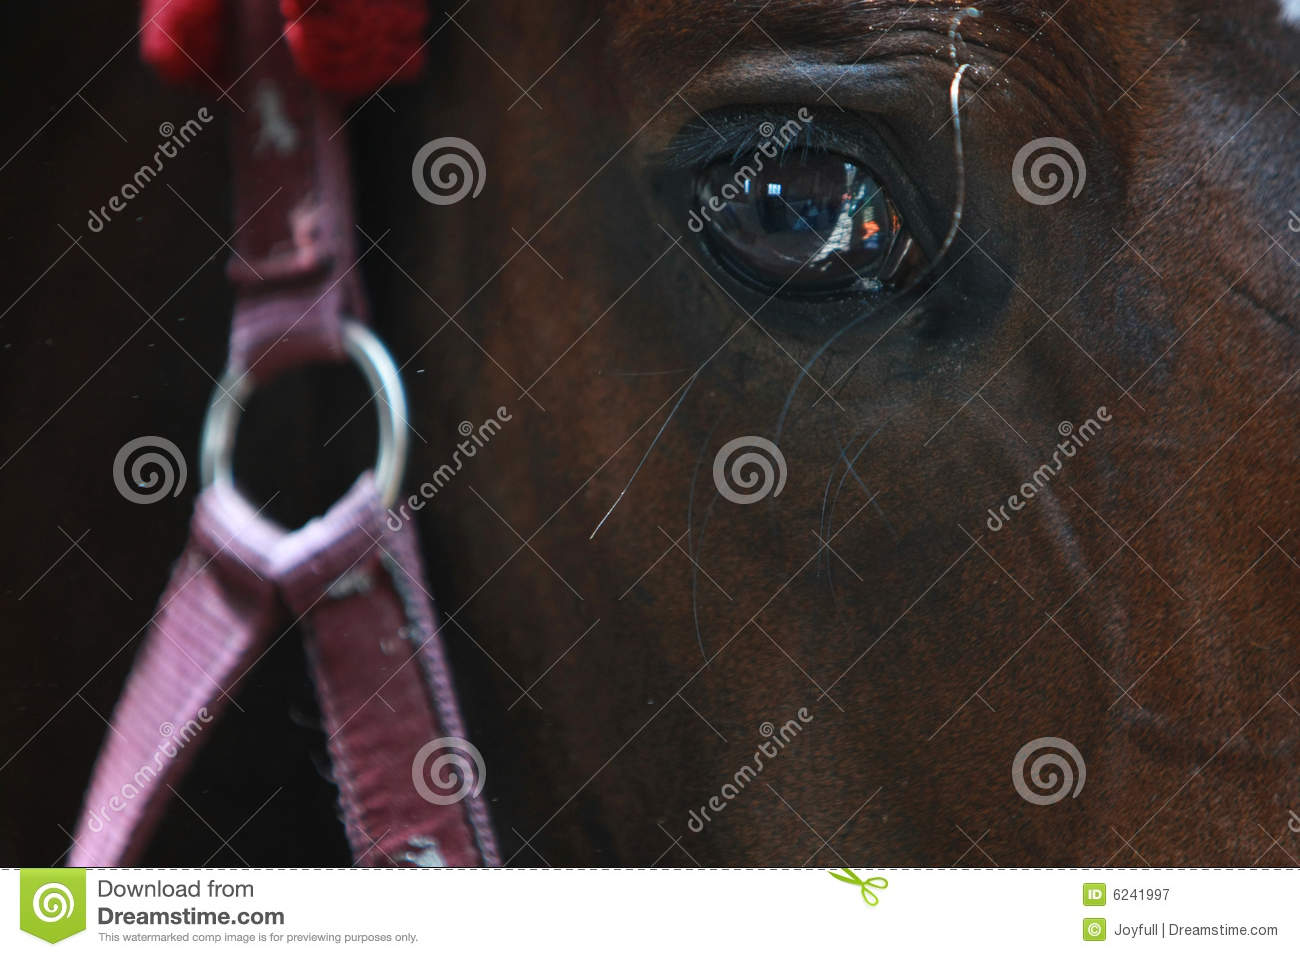 Horse with bridle stock image  Image of rigging, dark - 6241997